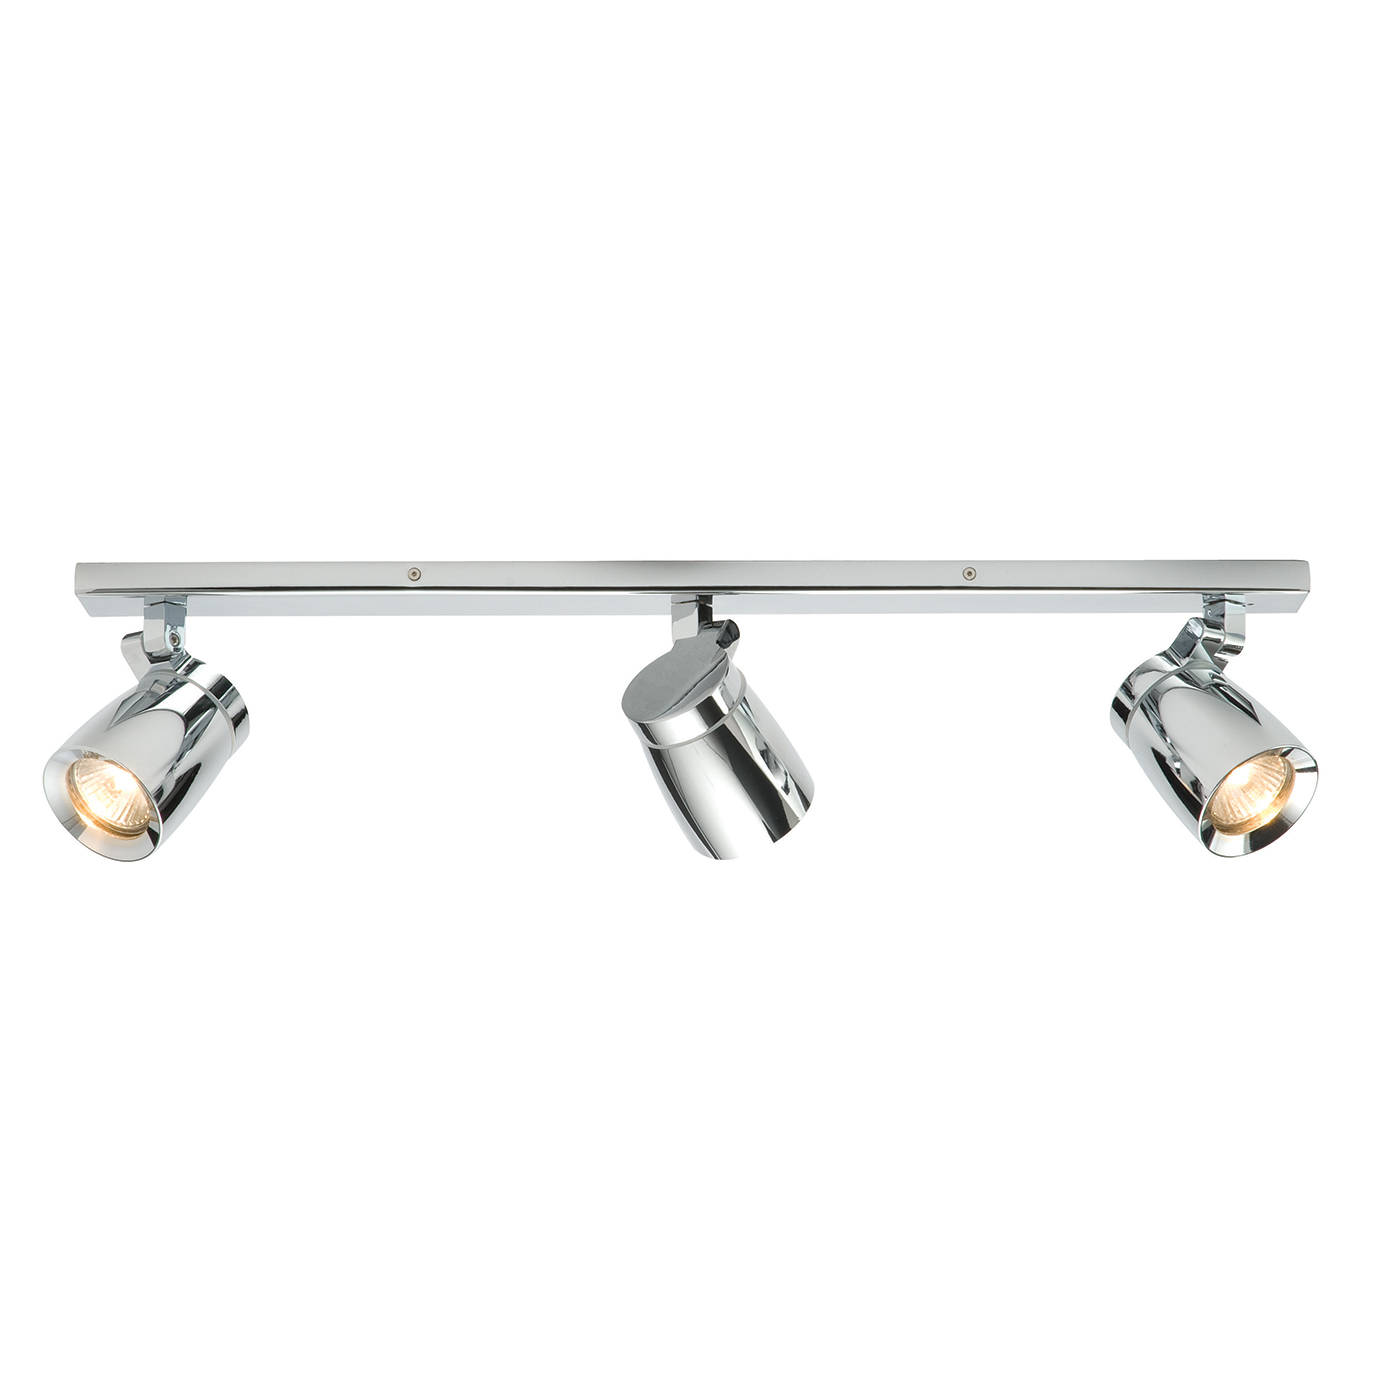 Endon Knight 3lt bathroom ceiling spotlight IP44 35W